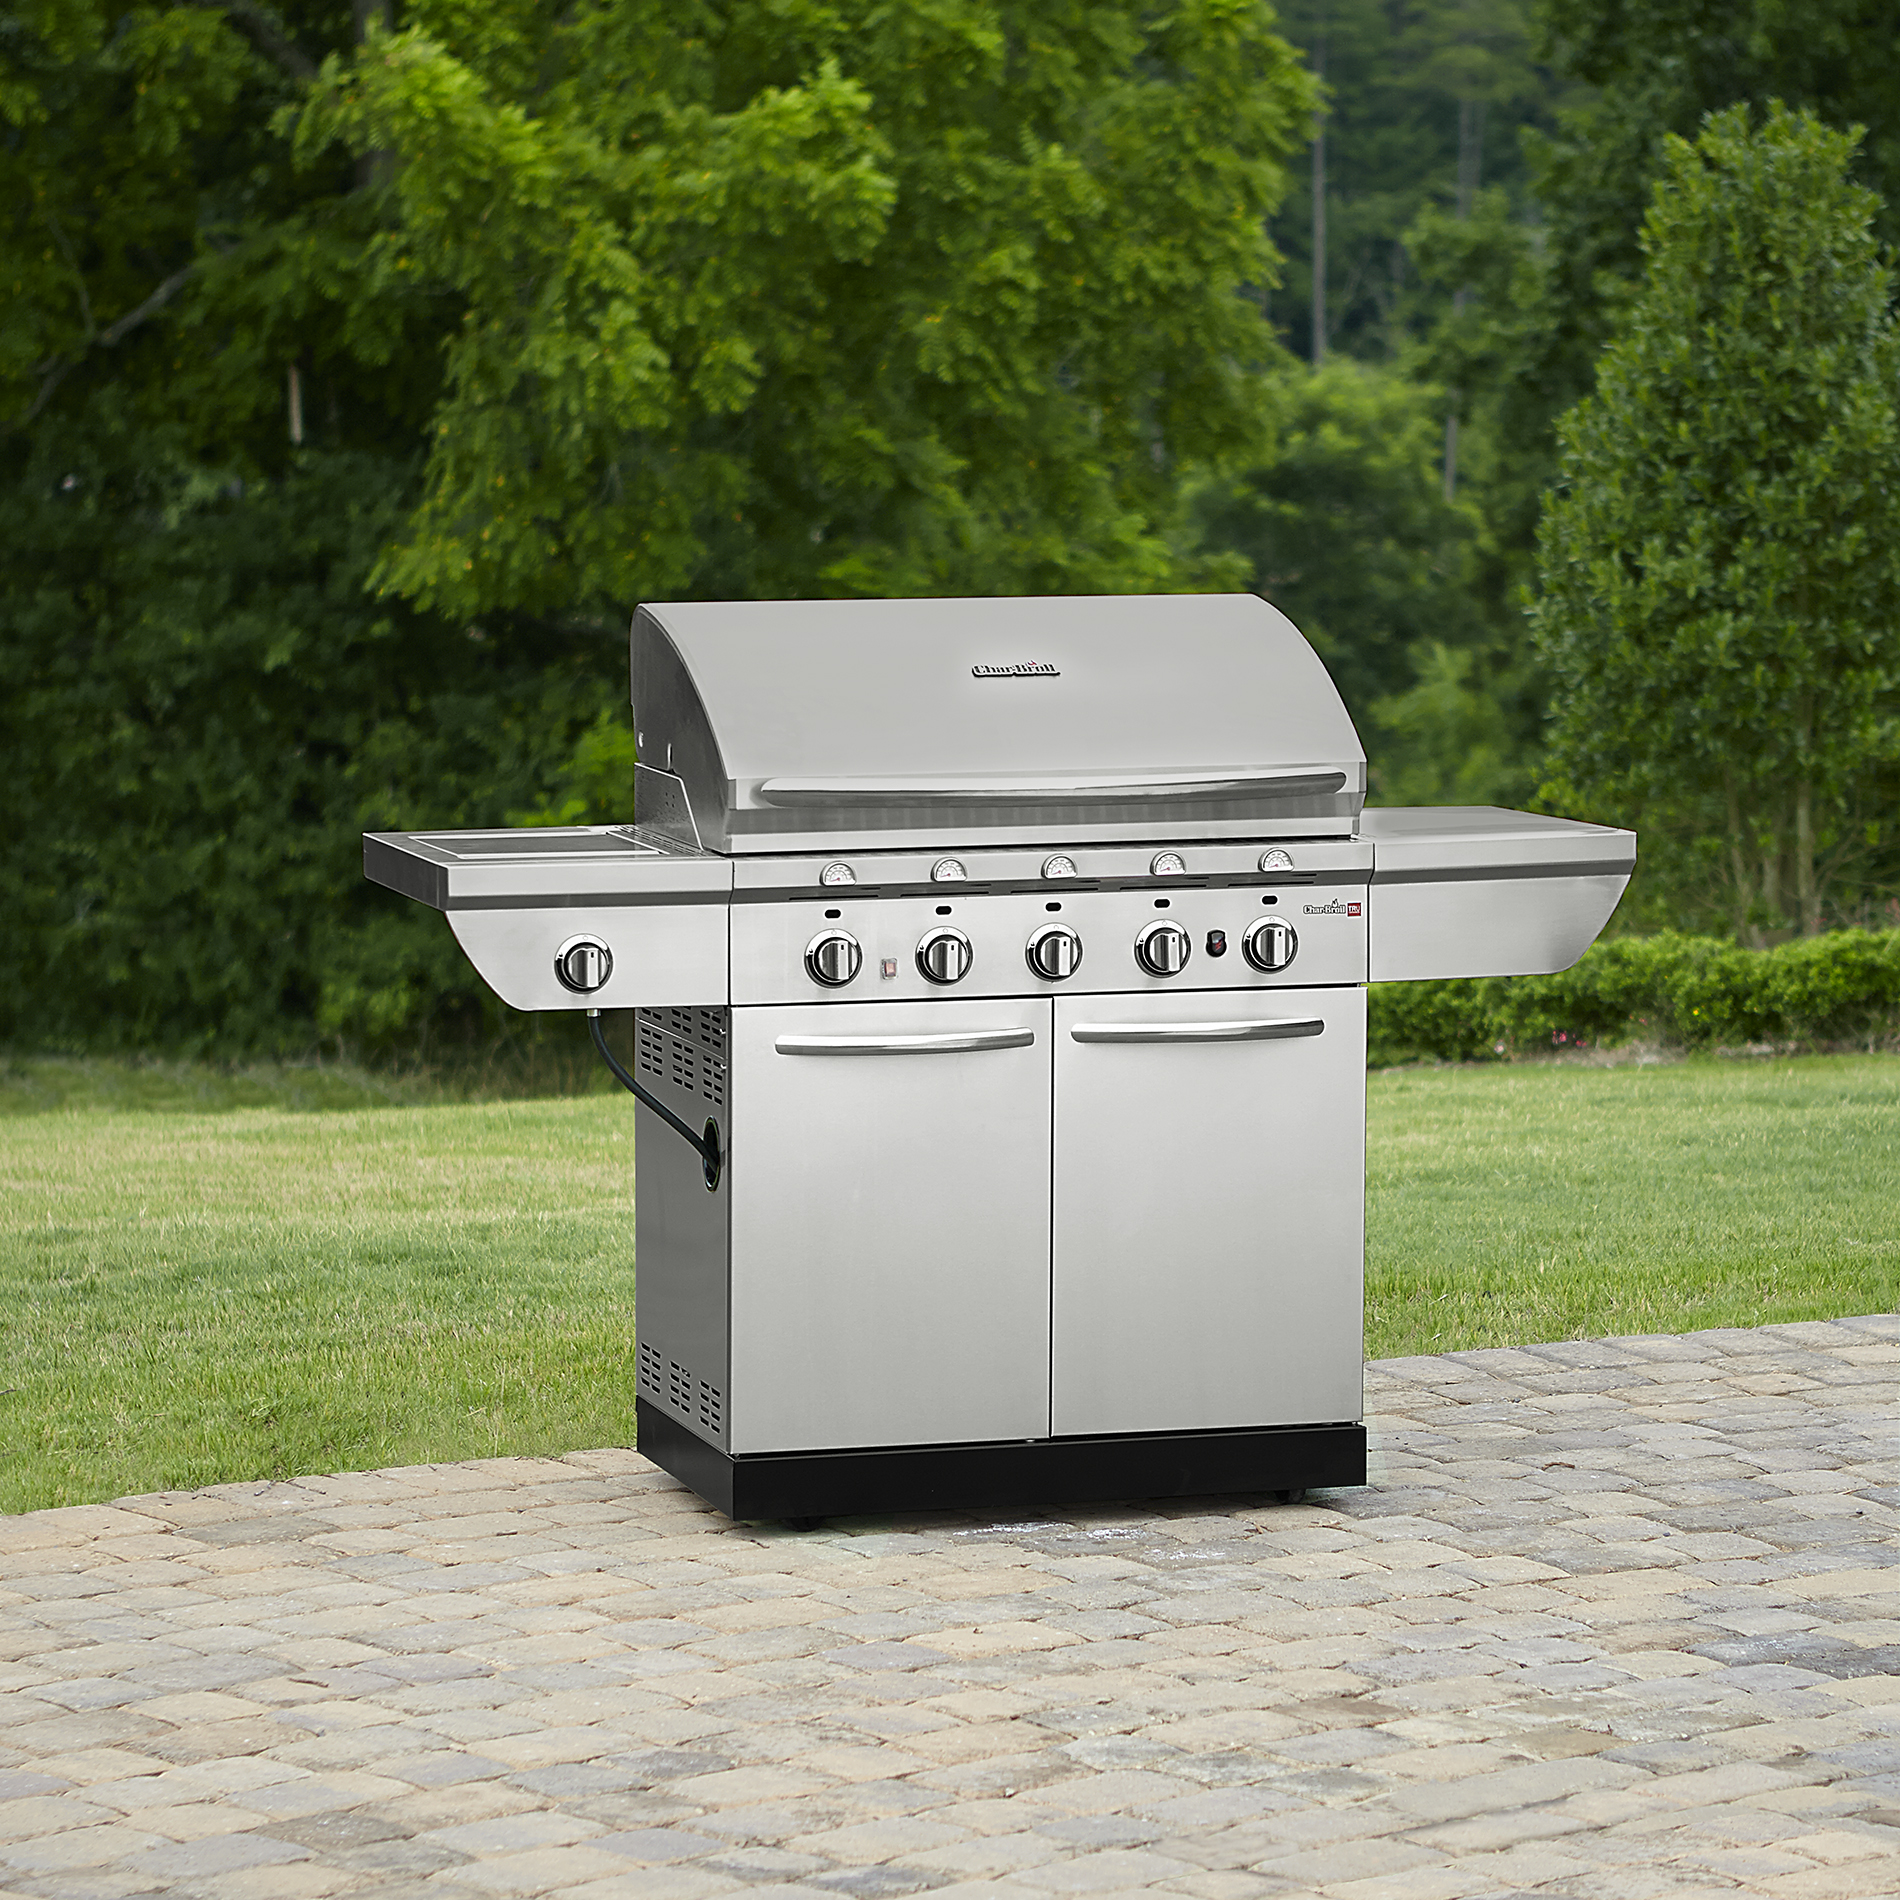 Broil Gasgrill Char Broil 5 Burner Infrared Gas Grill